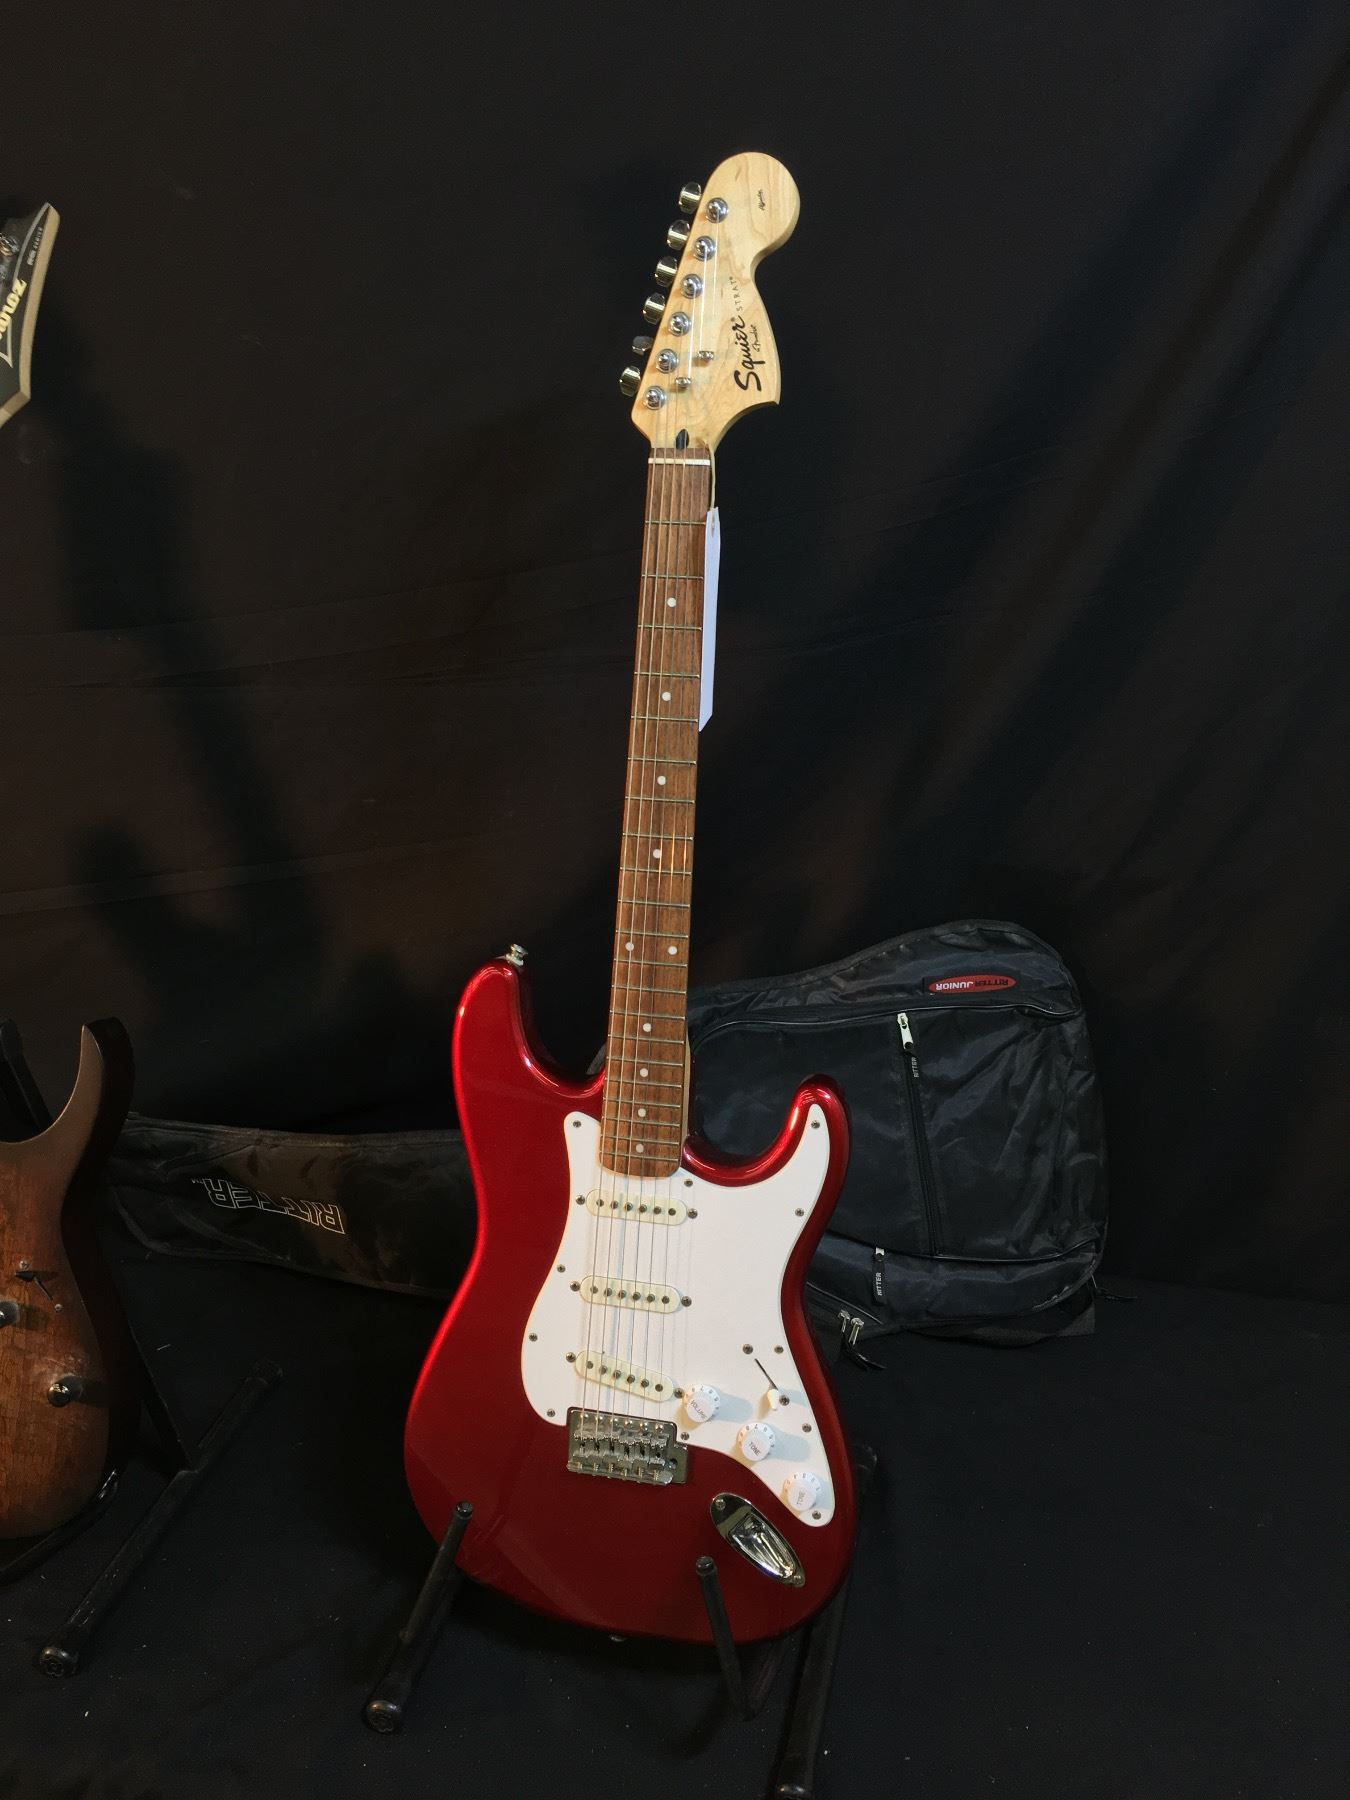 Great Ibanez Rg Wiring Big Ibanez Wiring Rectangular Dimarzio Switch Security Diagram Old One Humbucker One Volume BrightSolar Panel Wiring 3 GUITARS: HEAVILY STICKERED STRAT STYLE GUITAR, SQUIER STRAT, AND ..